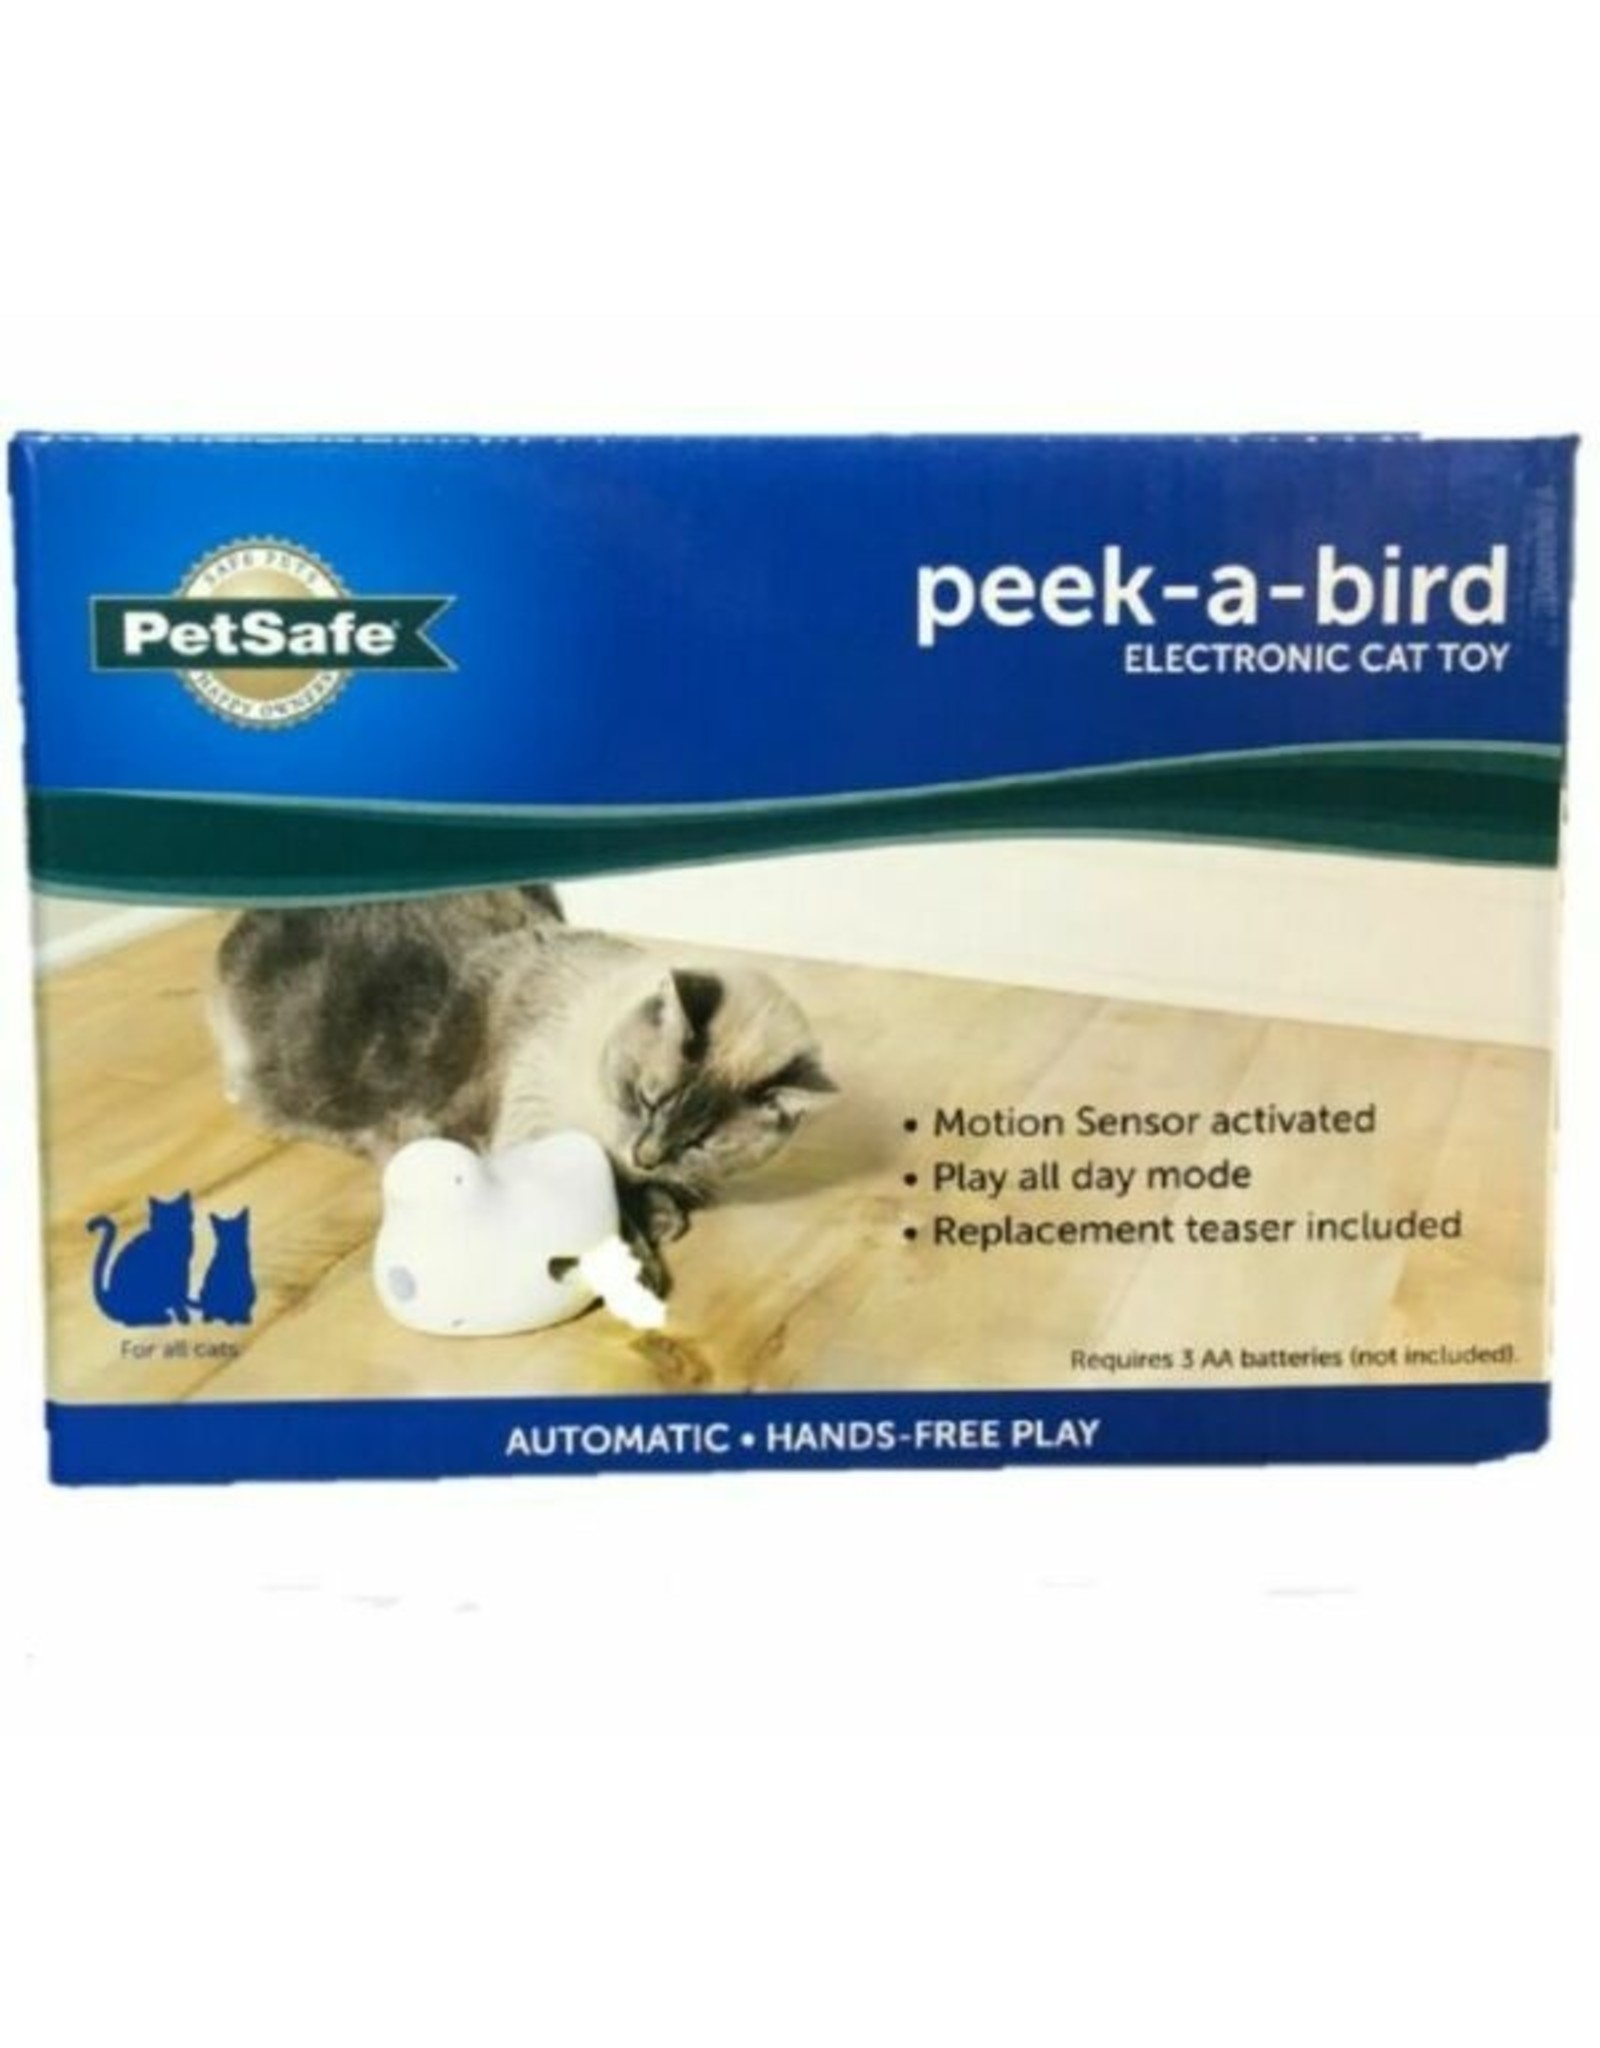 Petsafe PetSafe Peek-a-Bird Electronic Cat Toy